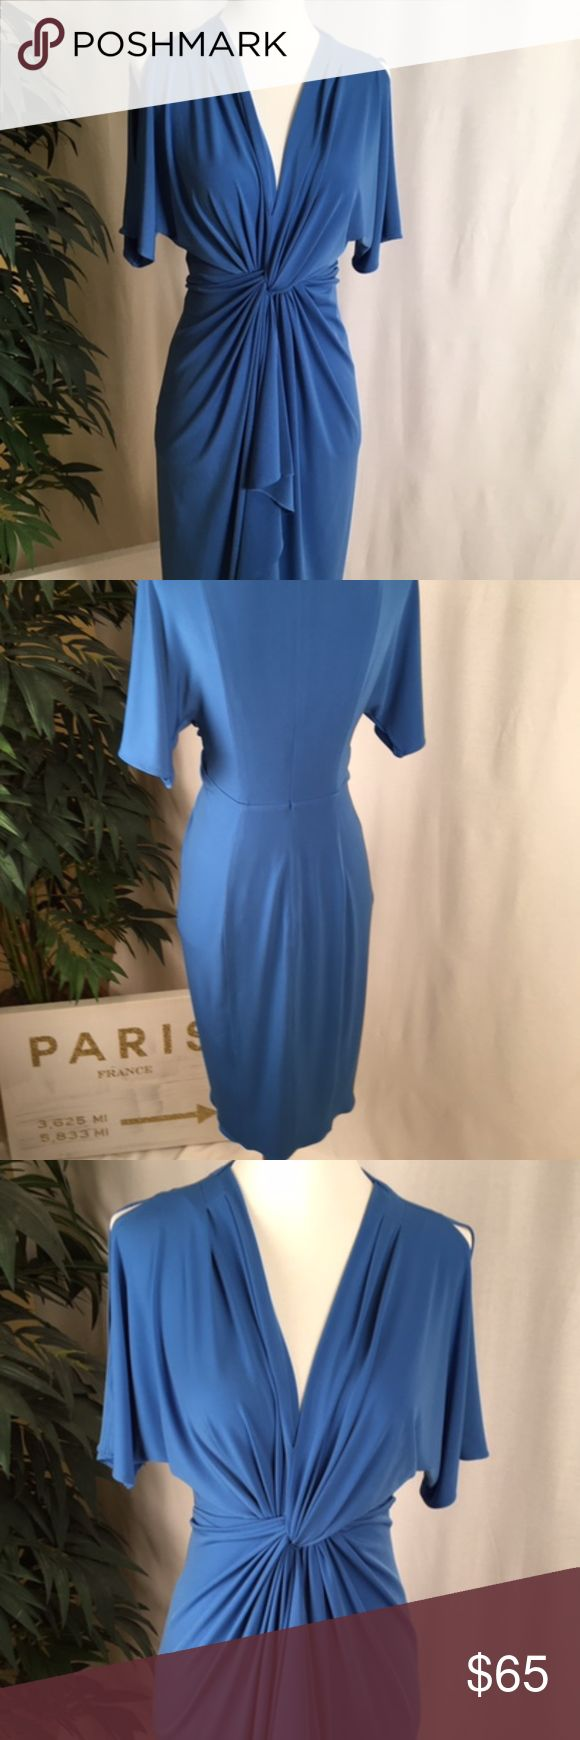 """CATHERINE Catherine Malandrino Blue Dress This Catherine Malandrino dress is in PRISTINE condition. This """"cold-shoulder"""" gathered dress is perfect worn with sandals or pumps, dressed up, or worn simply. It travels well, as I wore it once during a trip. Please notice that the shoulders are """"cut outs"""" so they are seamed at the bottom of the sleeve. The zipper/hook work properly. This is an EASY dress to wear, comfortable & moves with you.  NO smoking/pets.  Measures: Shoulder to…"""